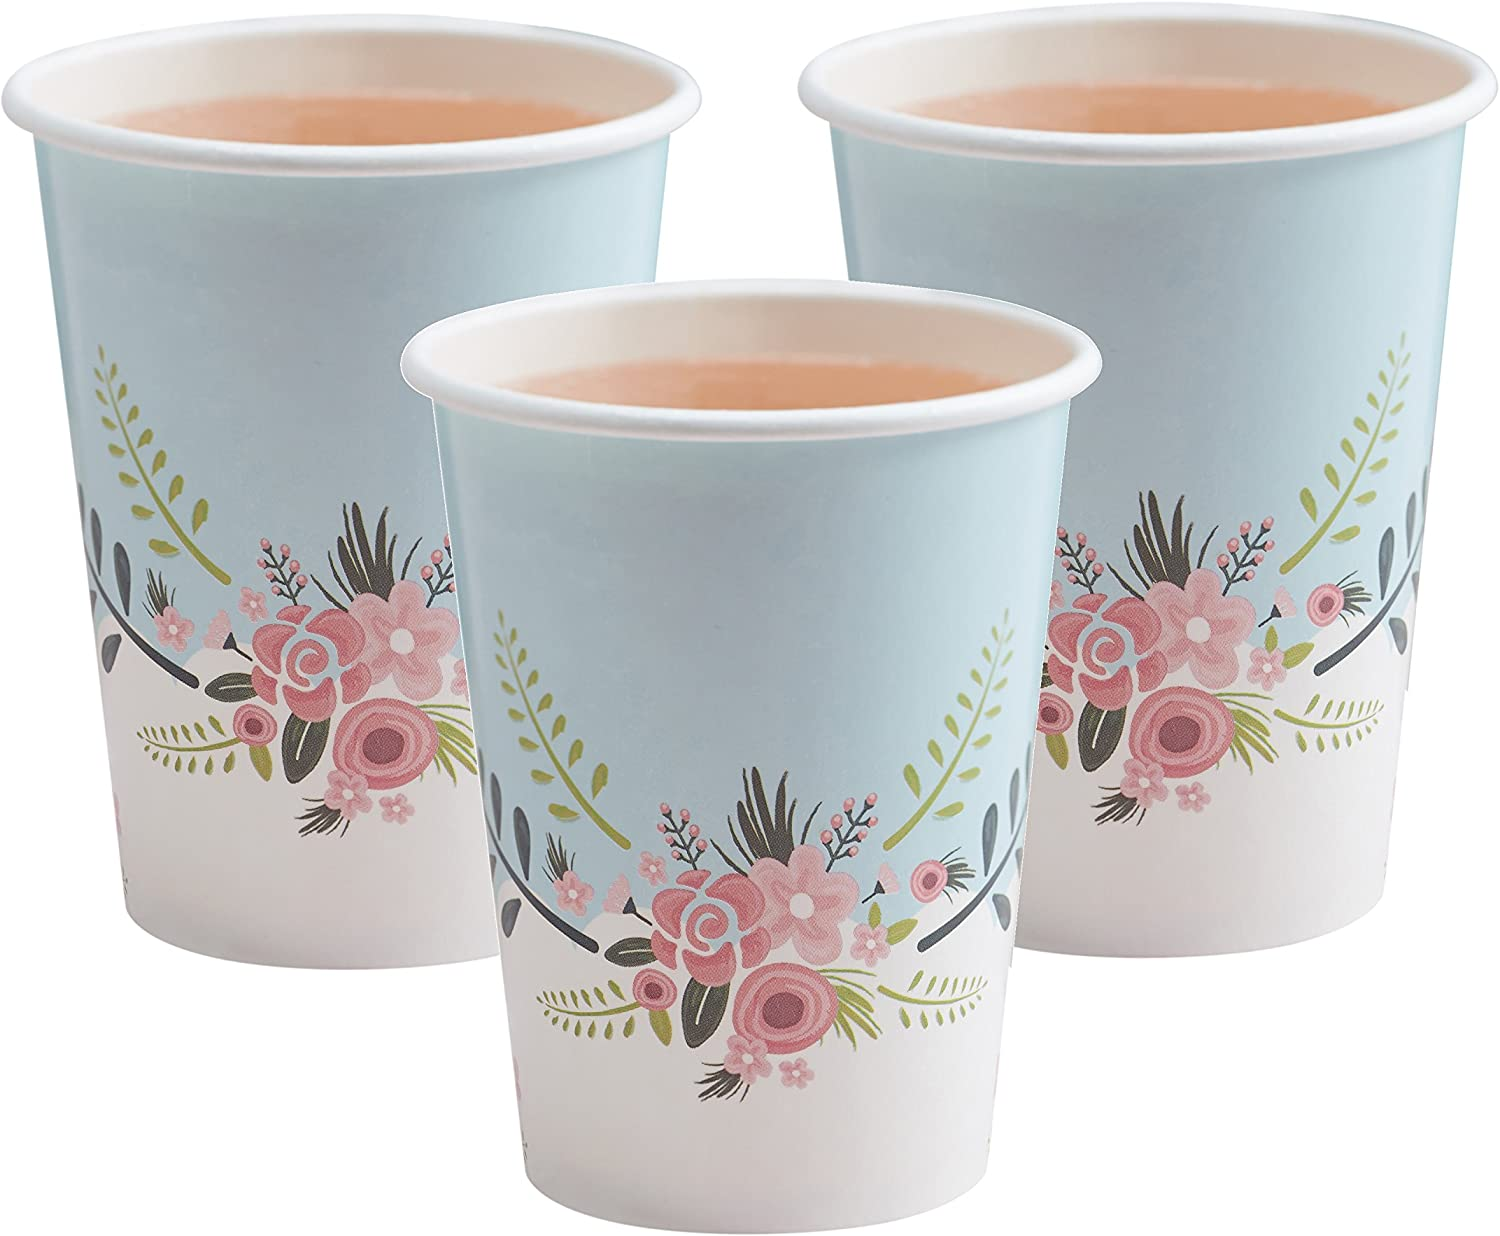 ASDA Blue Paper Cups   Online food shopping, Paper cup